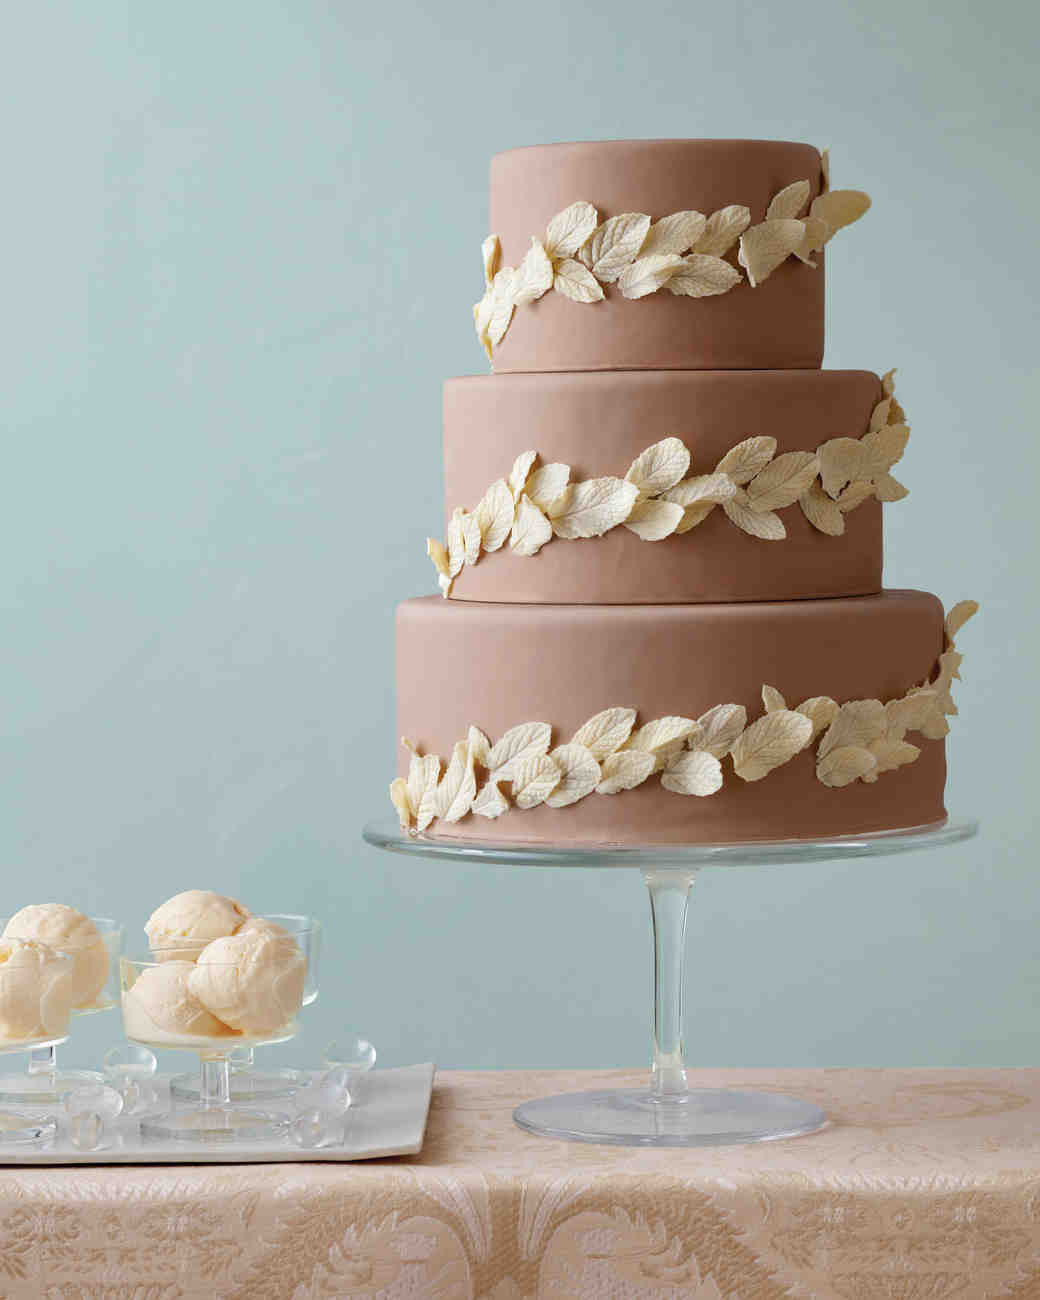 11 DIY Wedding Cake Ideas That Will Transform Your Tiers   Martha     Chocolate Leaf Wedding Cake